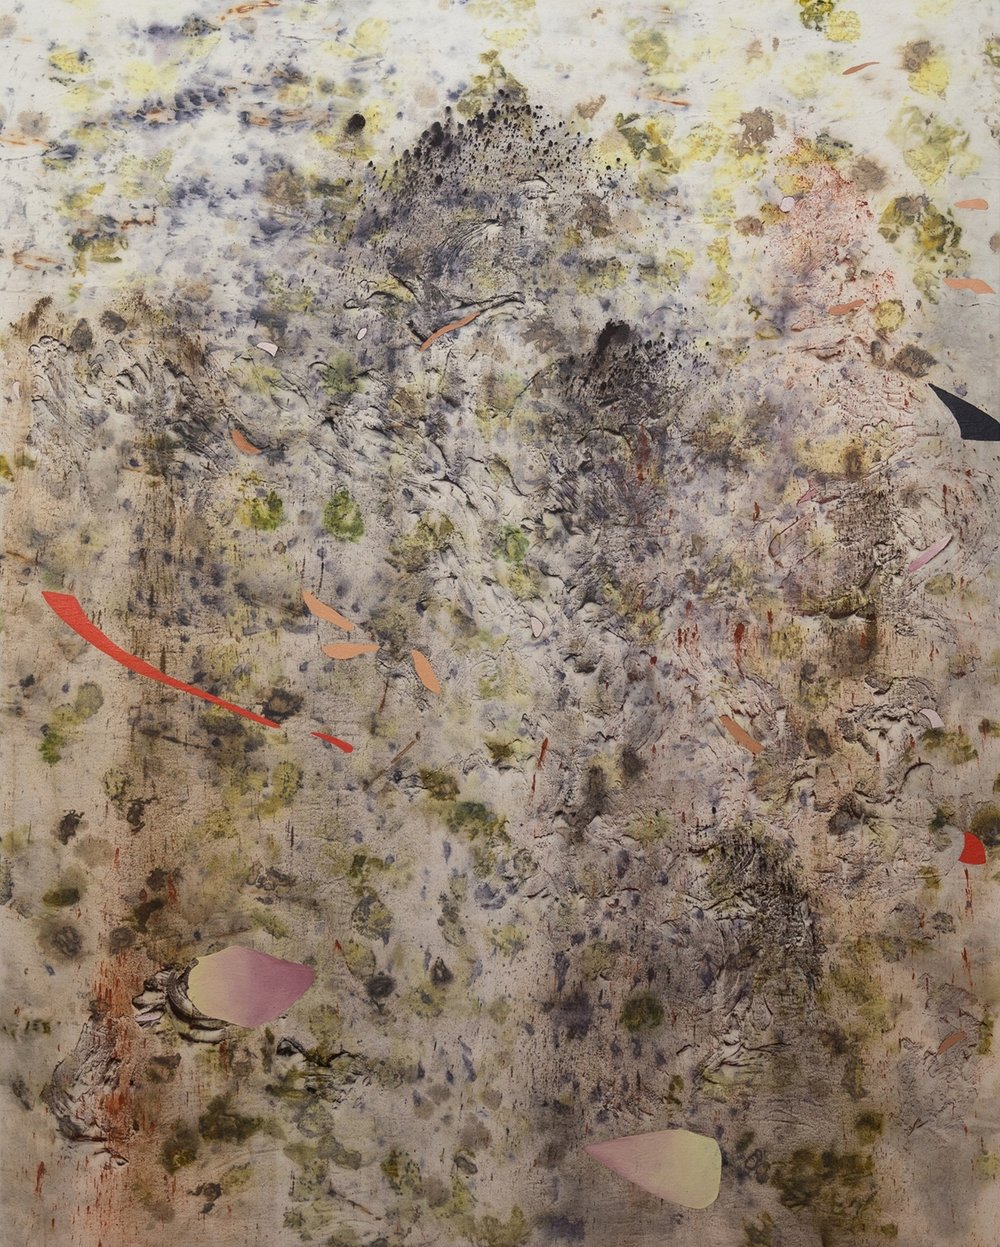 Mourning Humus,   Cold Wax Medium, Oil, Raw Pigments, Sand, Red Earth, and Various Plant Materials (including Acorns, Avocado Pits, Ferns, Sumac Berries, Rose Petals, Onion Skins, Tansy Flower, Wildflowers, and Rusty Nails) on Canvas  , 5x4 feet, 2018